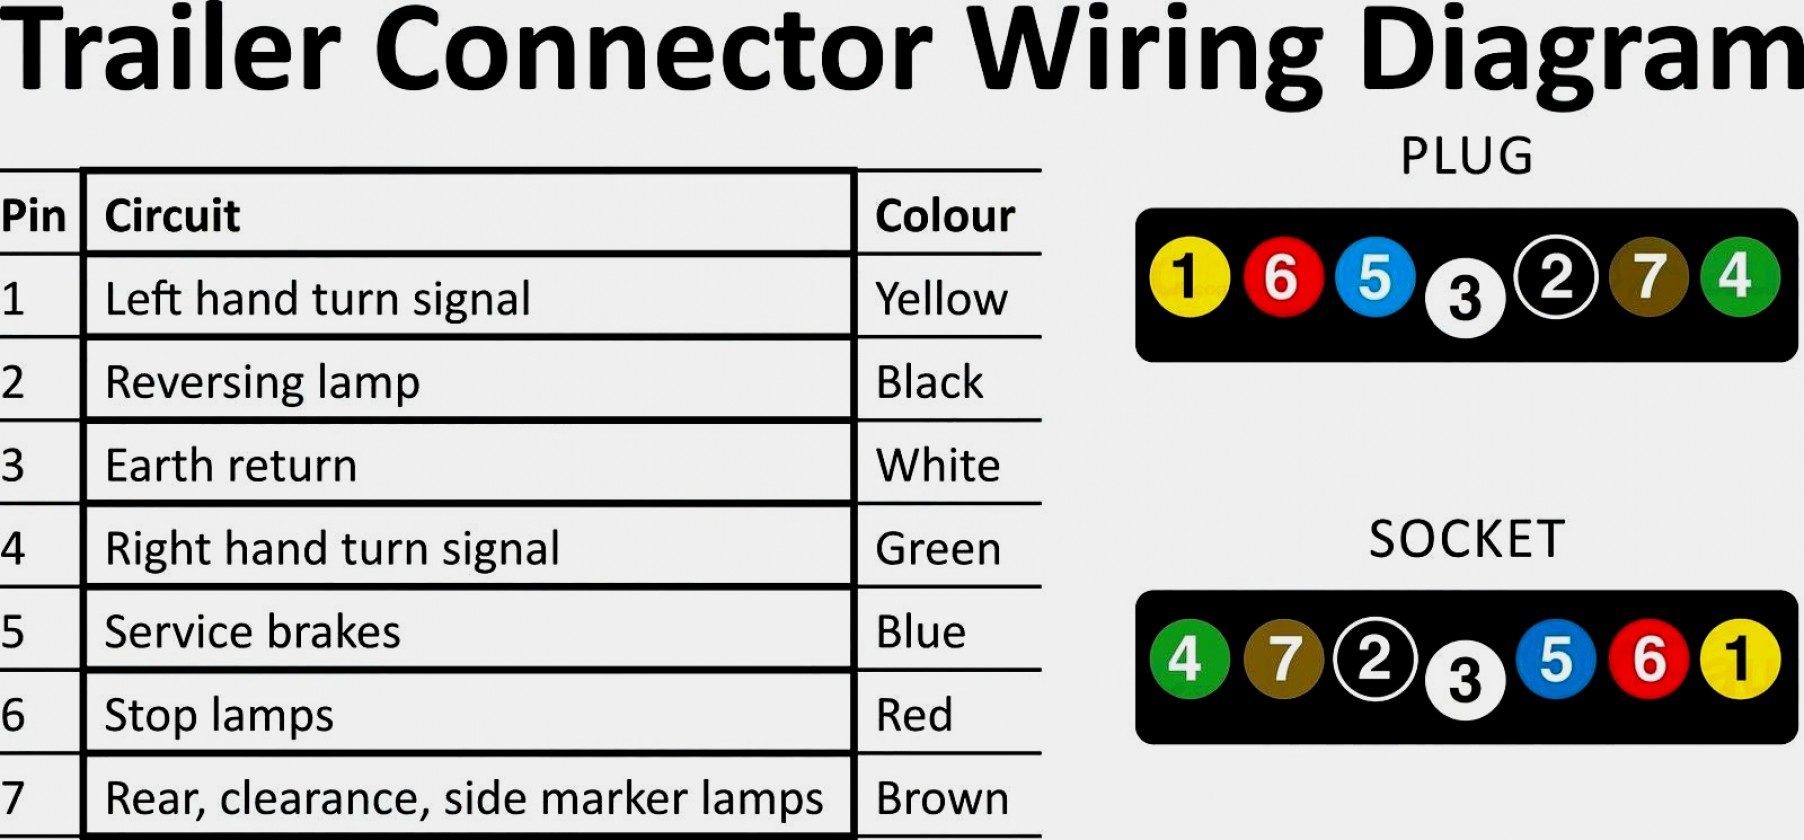 Six Pole Trailer Wiring Diagram | Wiring Diagram - 4 Prong Wiring Diagram For Trailer